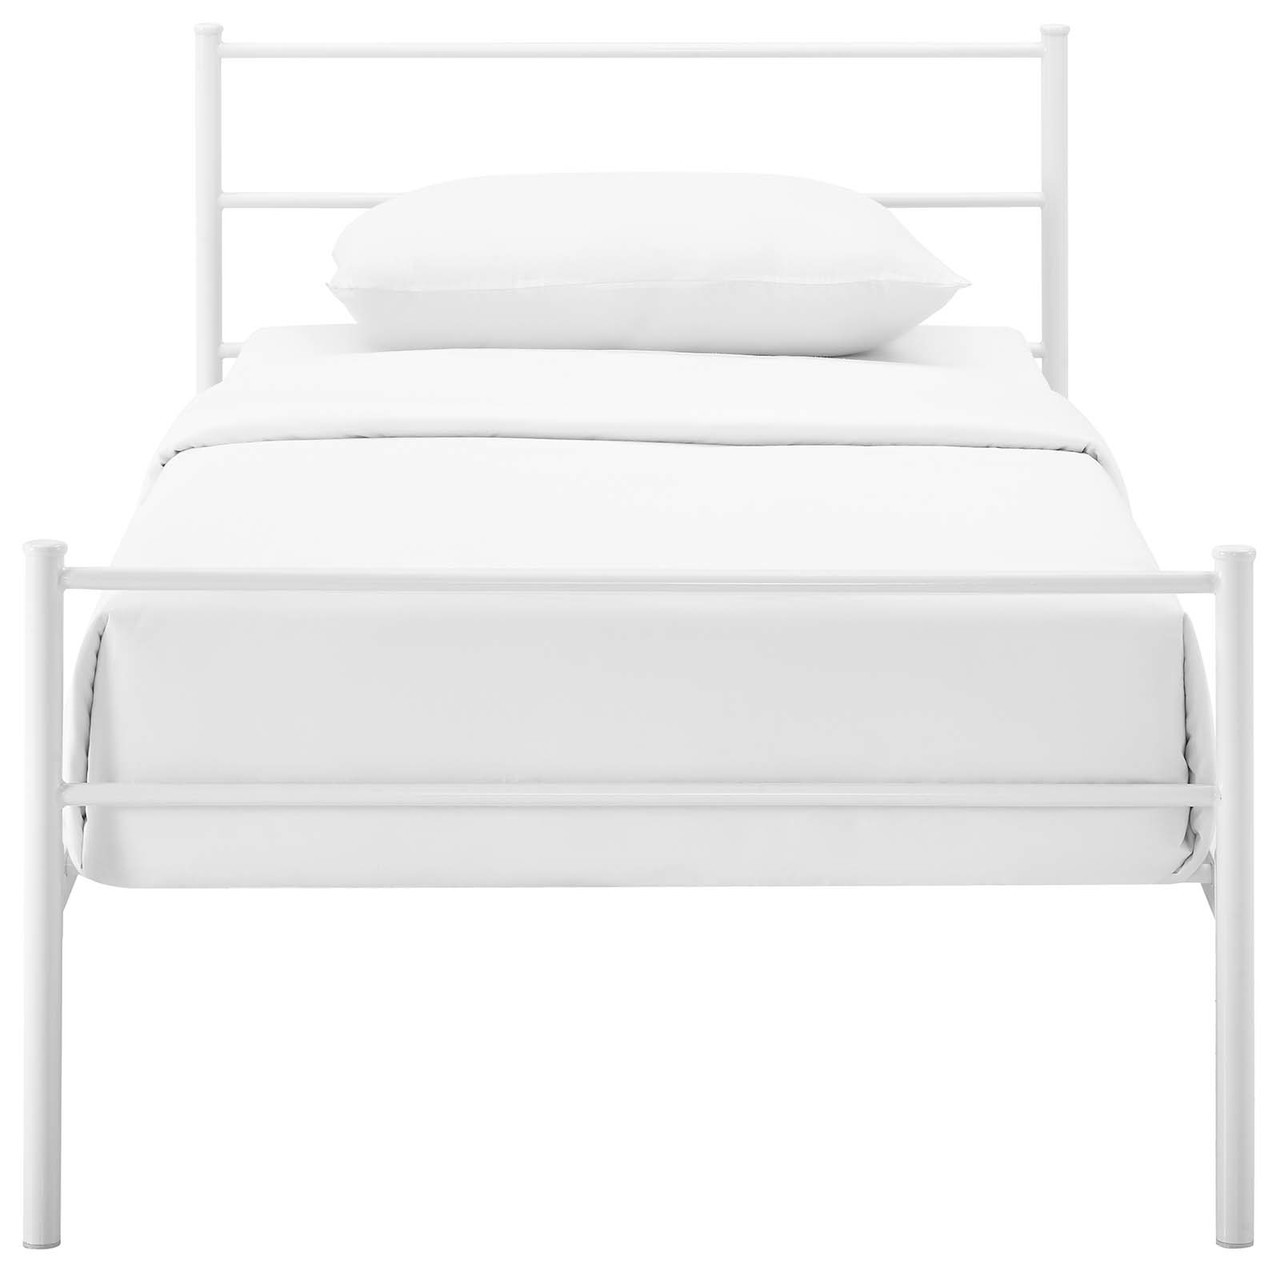 Alina Twin Platform Bed Frame Twin Size Metal Steel White 14435 House Bound